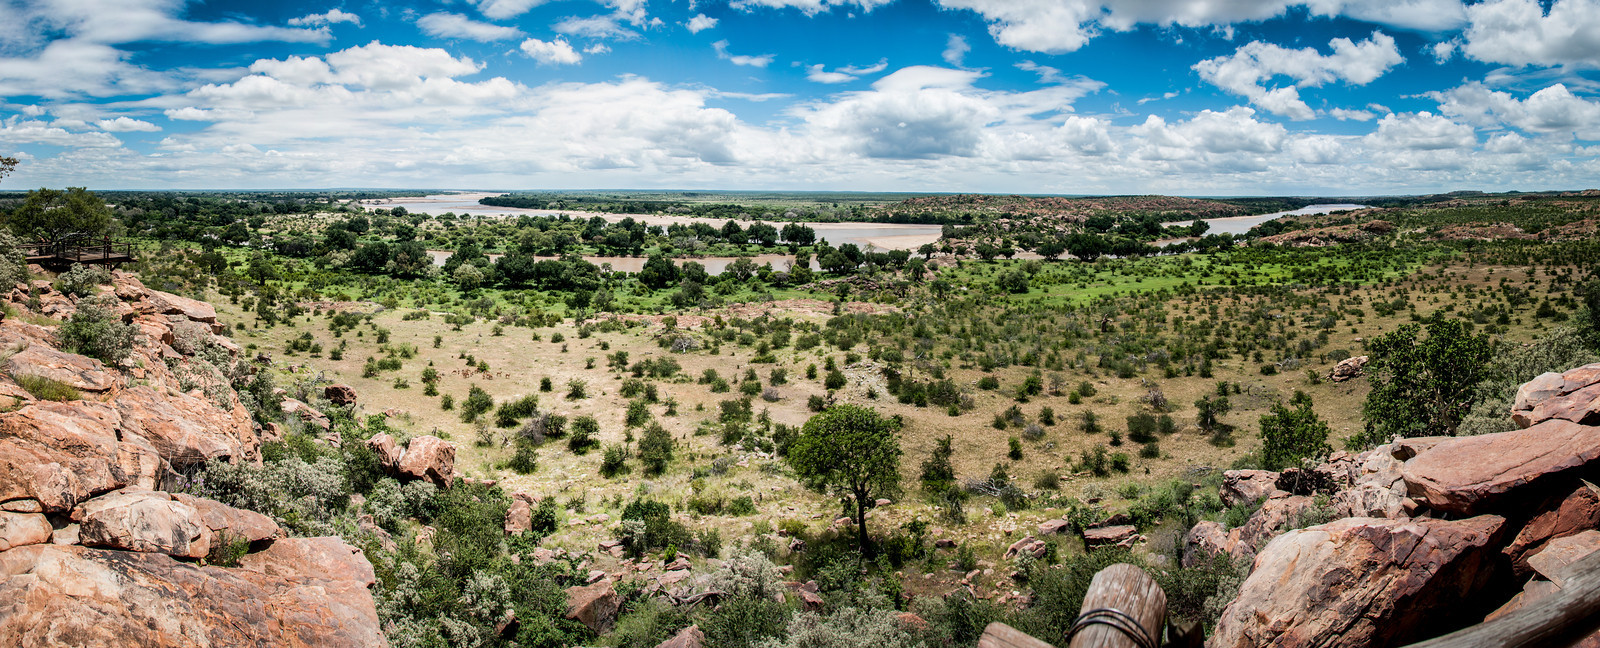 Panorama of Mapungubwe National Park, Limpopo, South Africa